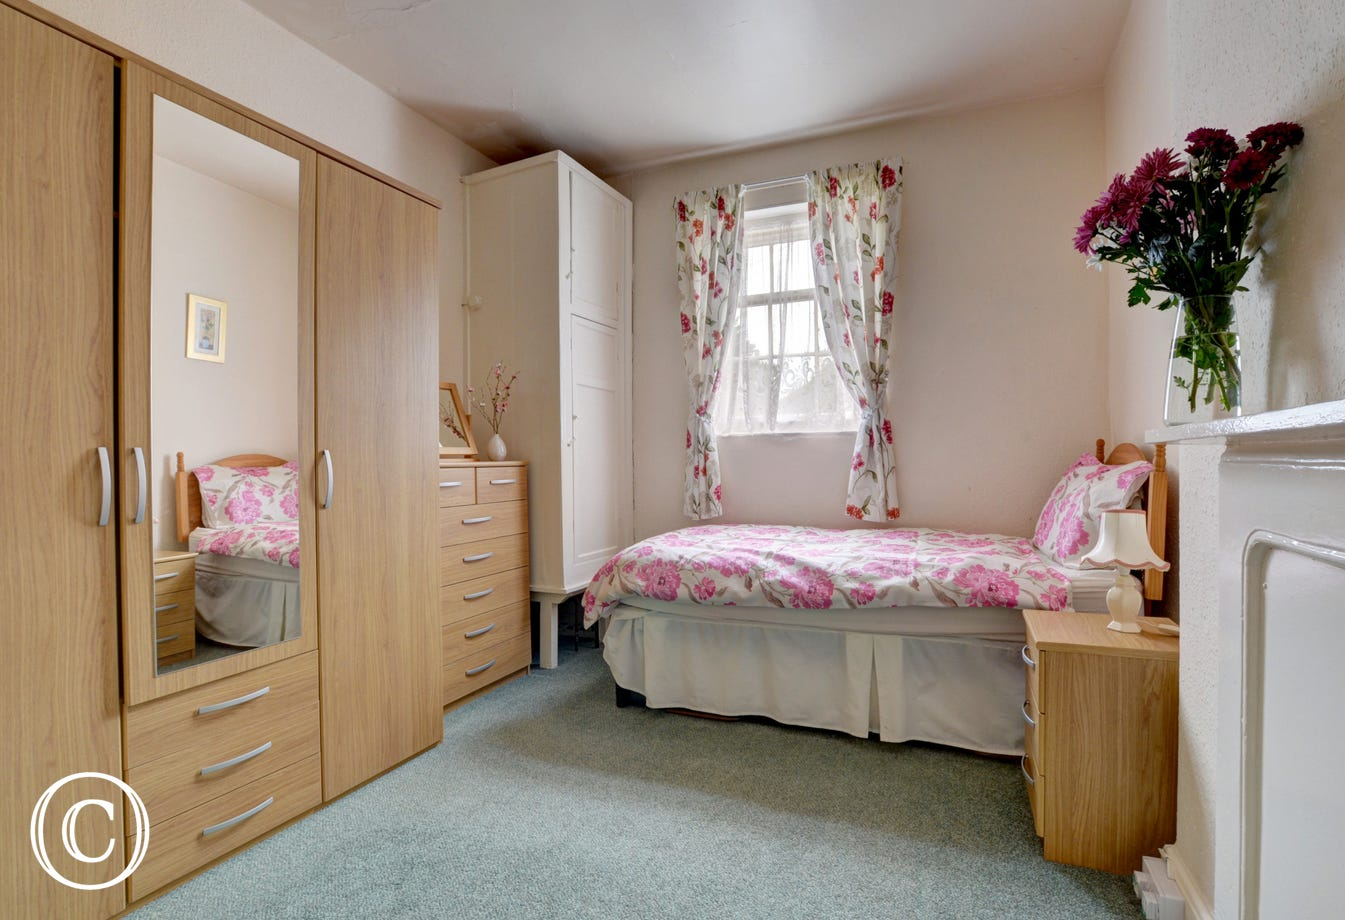 Twin bedded room with ample wardrobe space